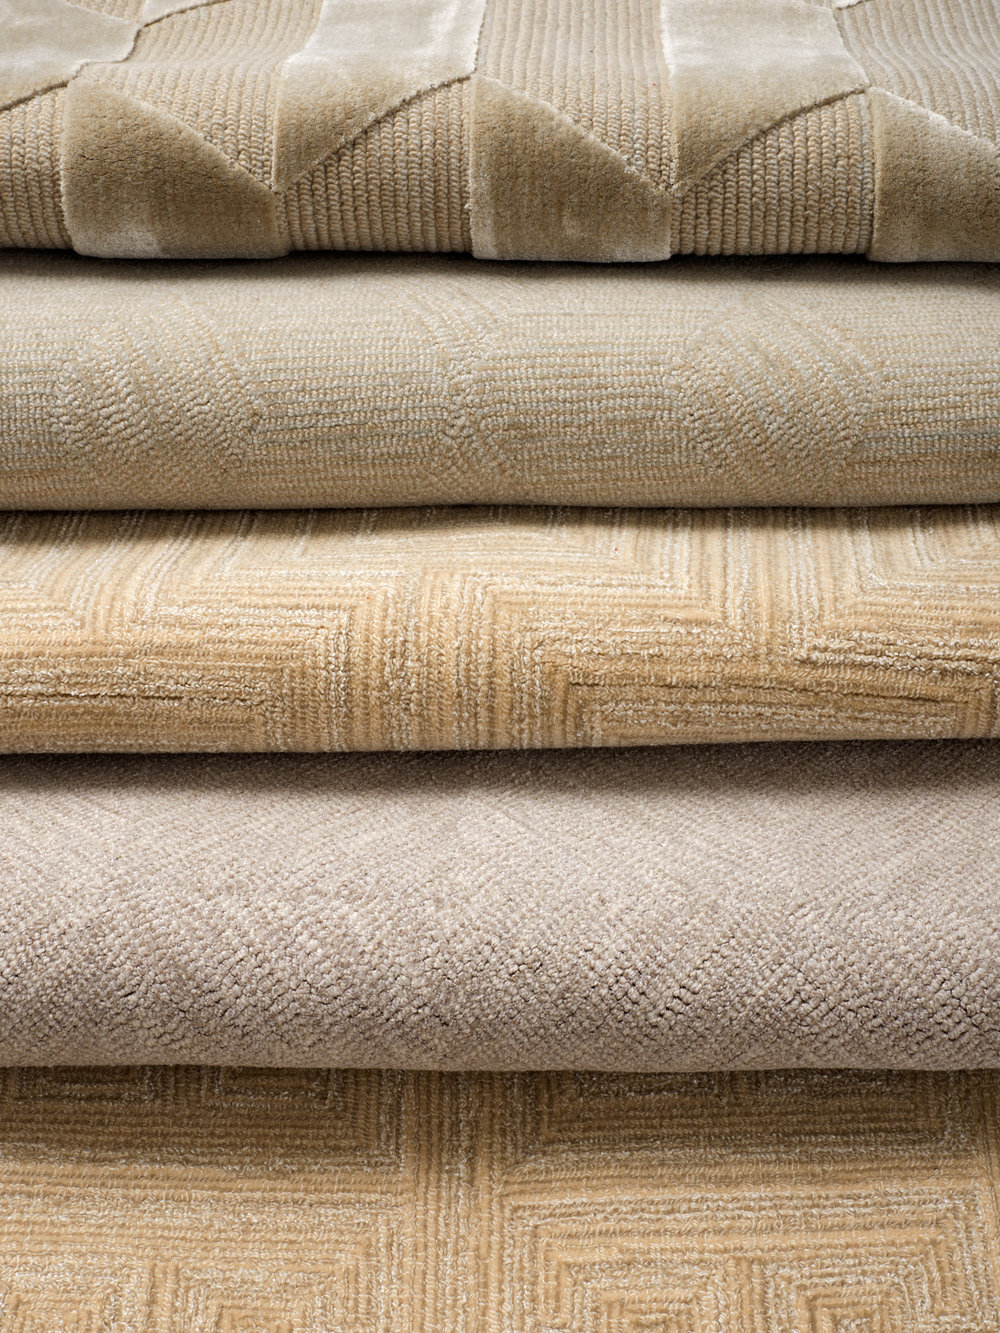 A stack of hand-tufted, silk wool rugs in neutral tones with different geometric patterns.